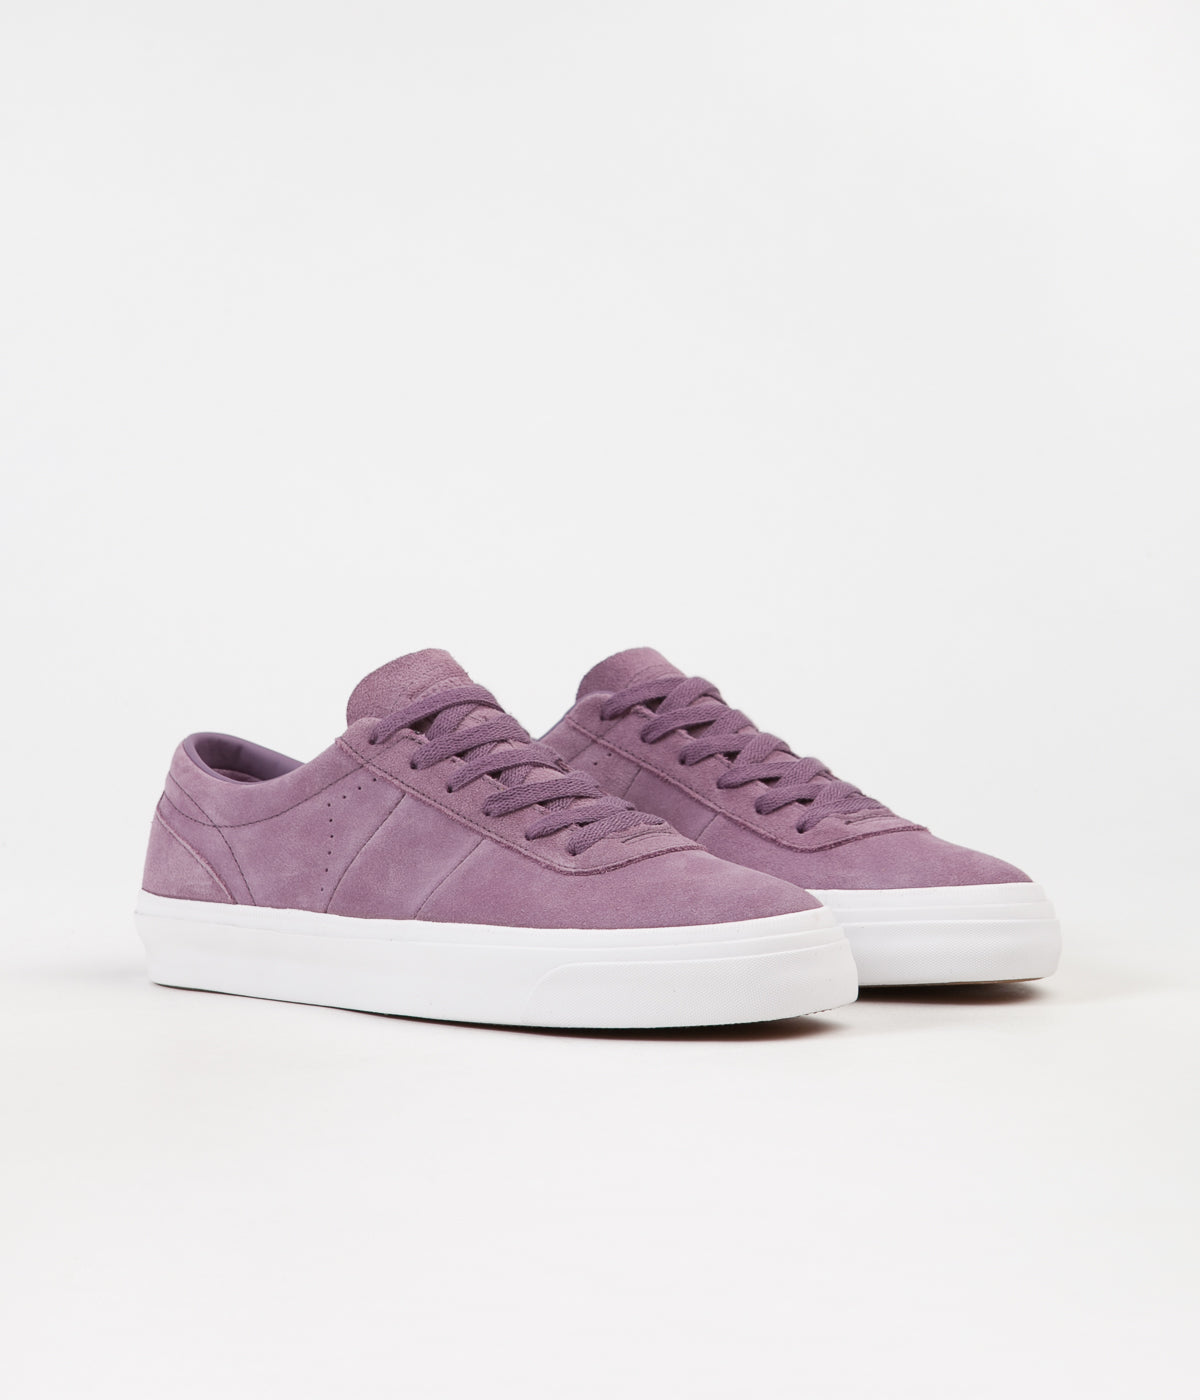 Converse One Star CC Pro Ox Shoes Violet Dust Icon